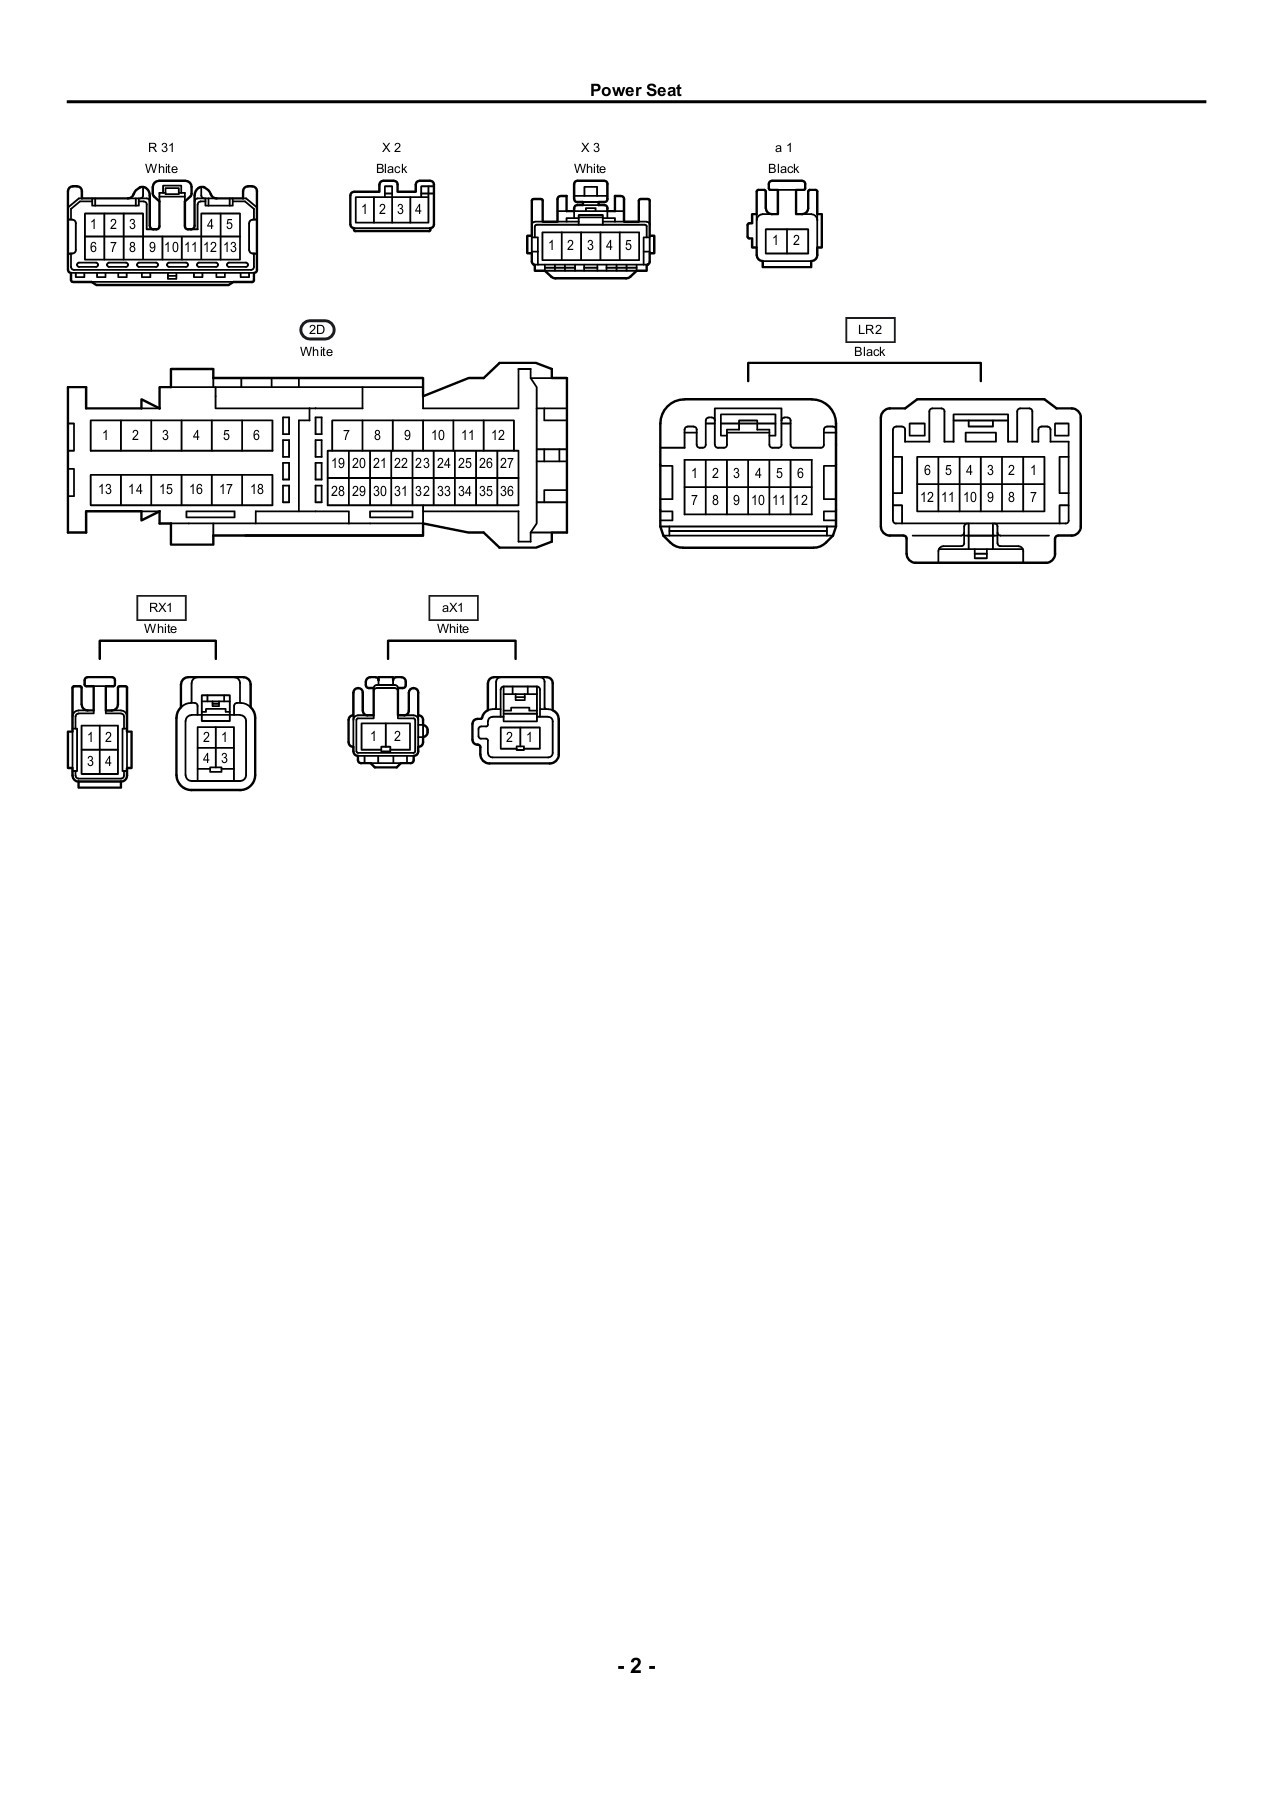 medium resolution of toyota prius 2010 electrical wiring diagrams pages 351 400 text version fliphtml5